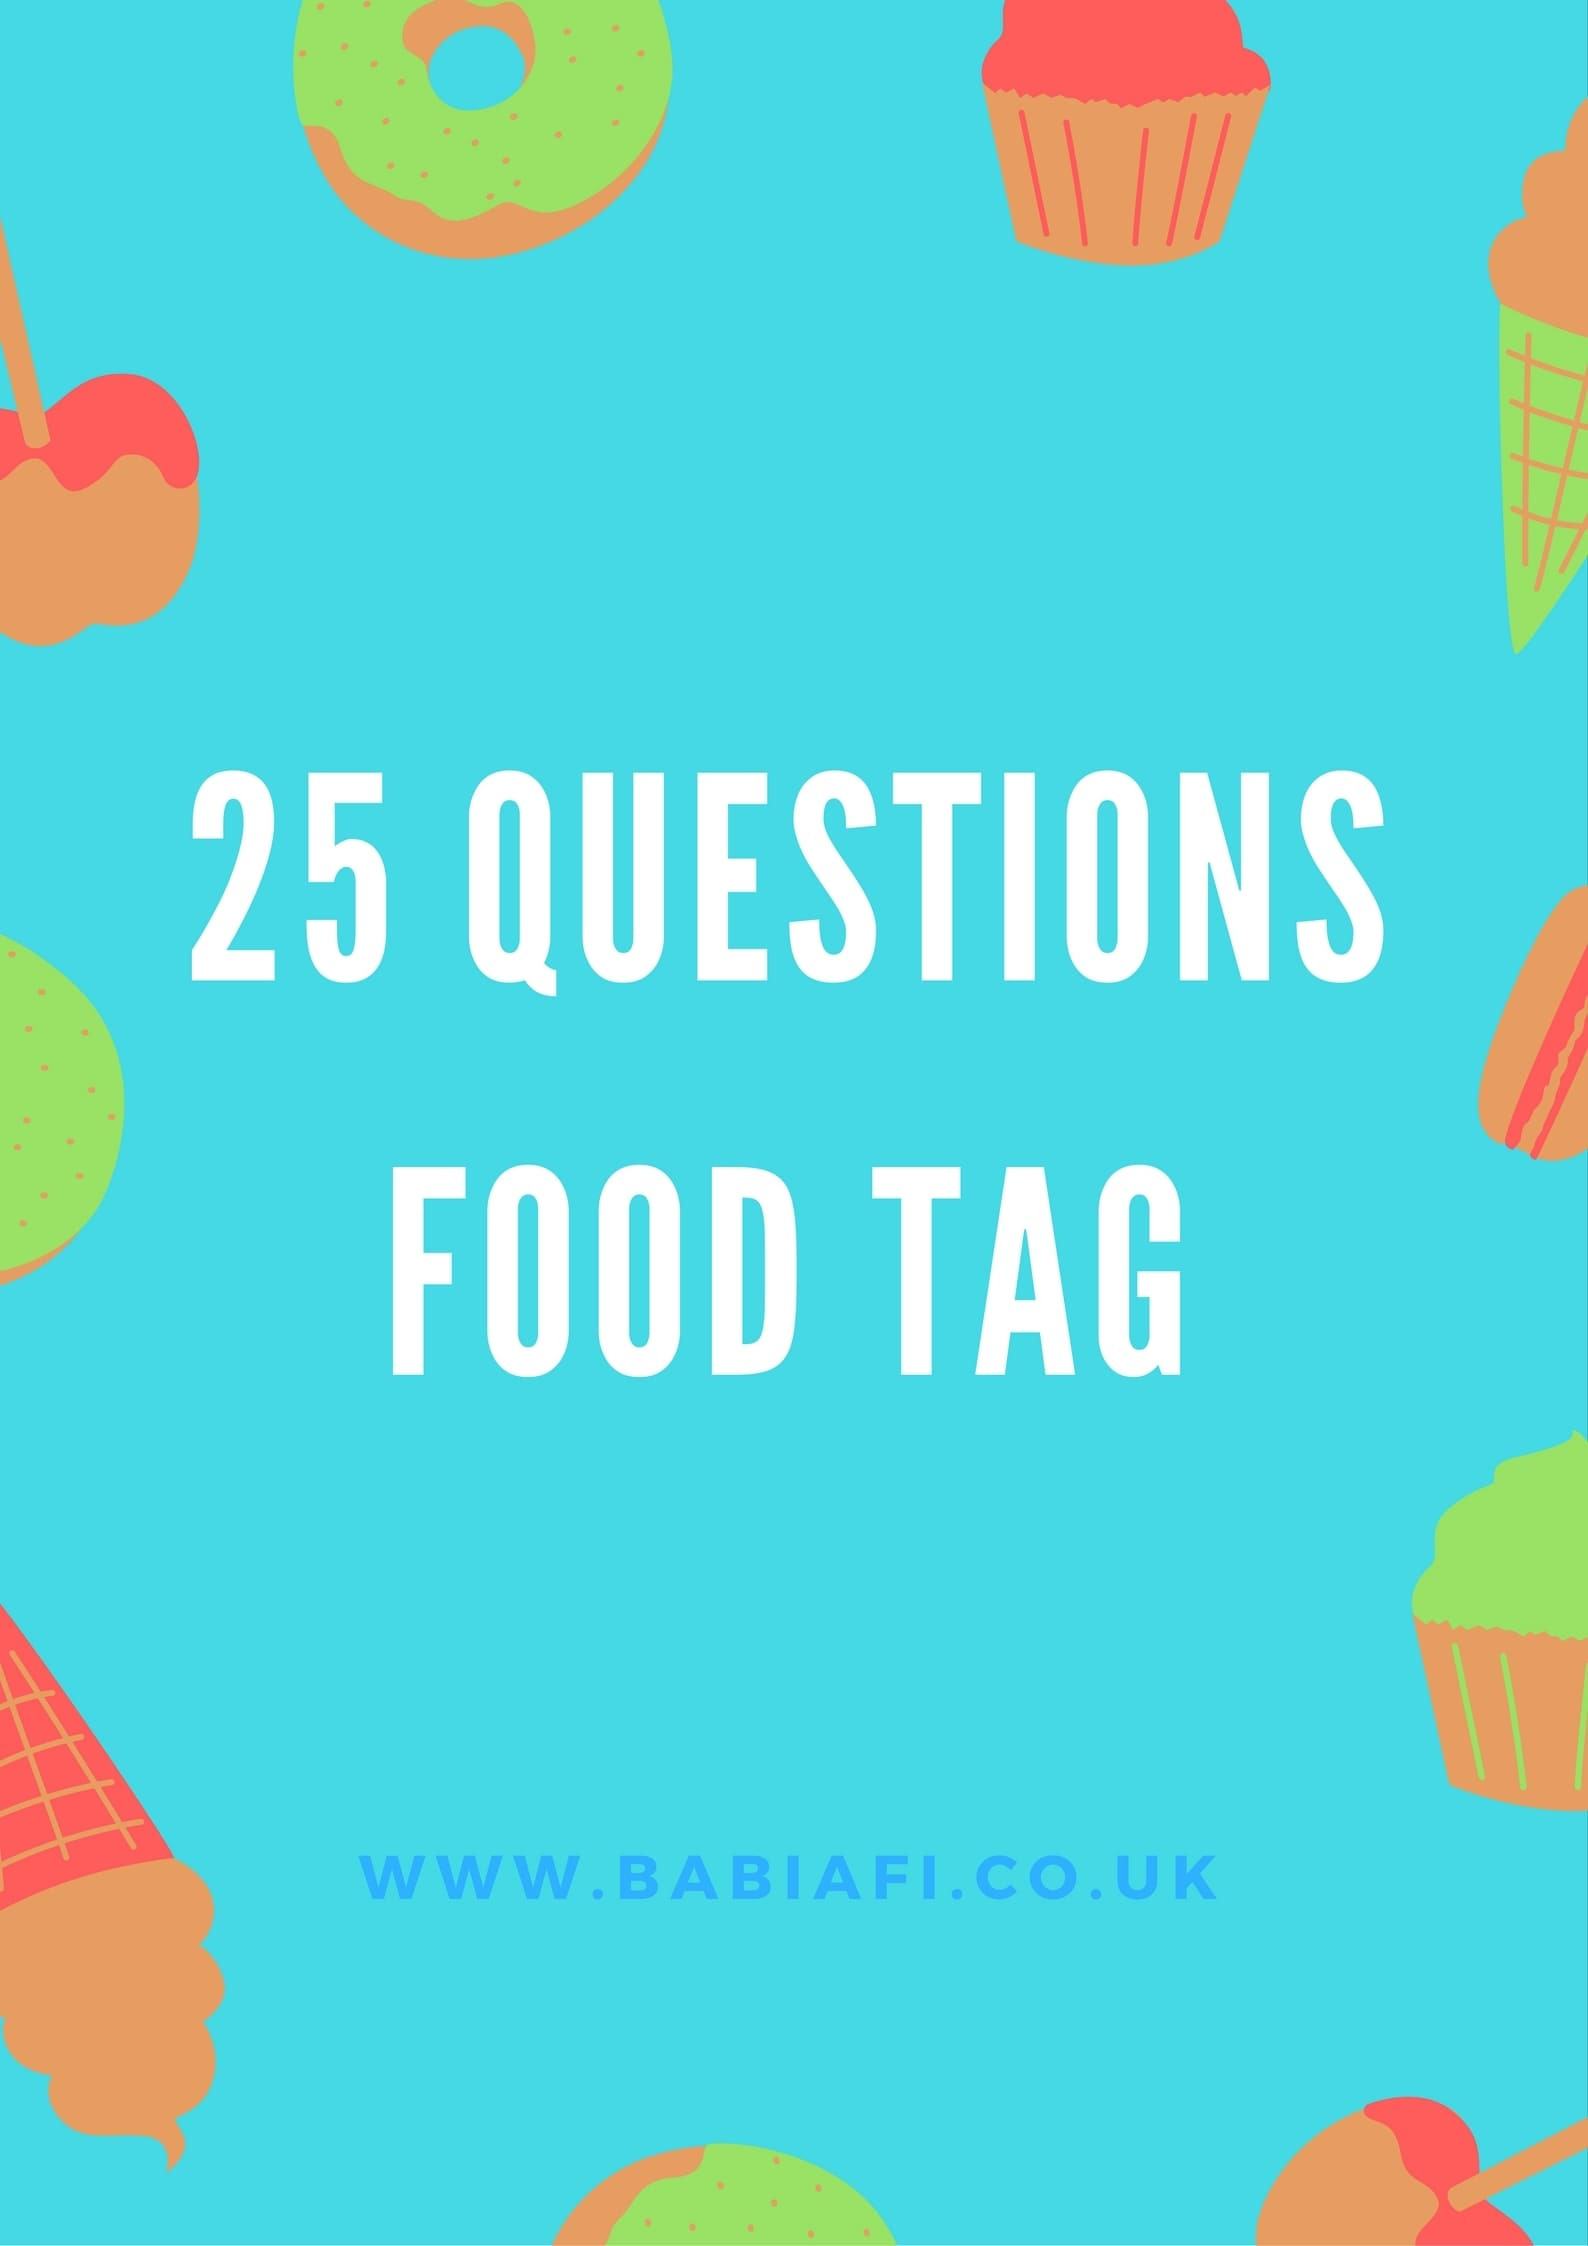 25 Questions Food Tag